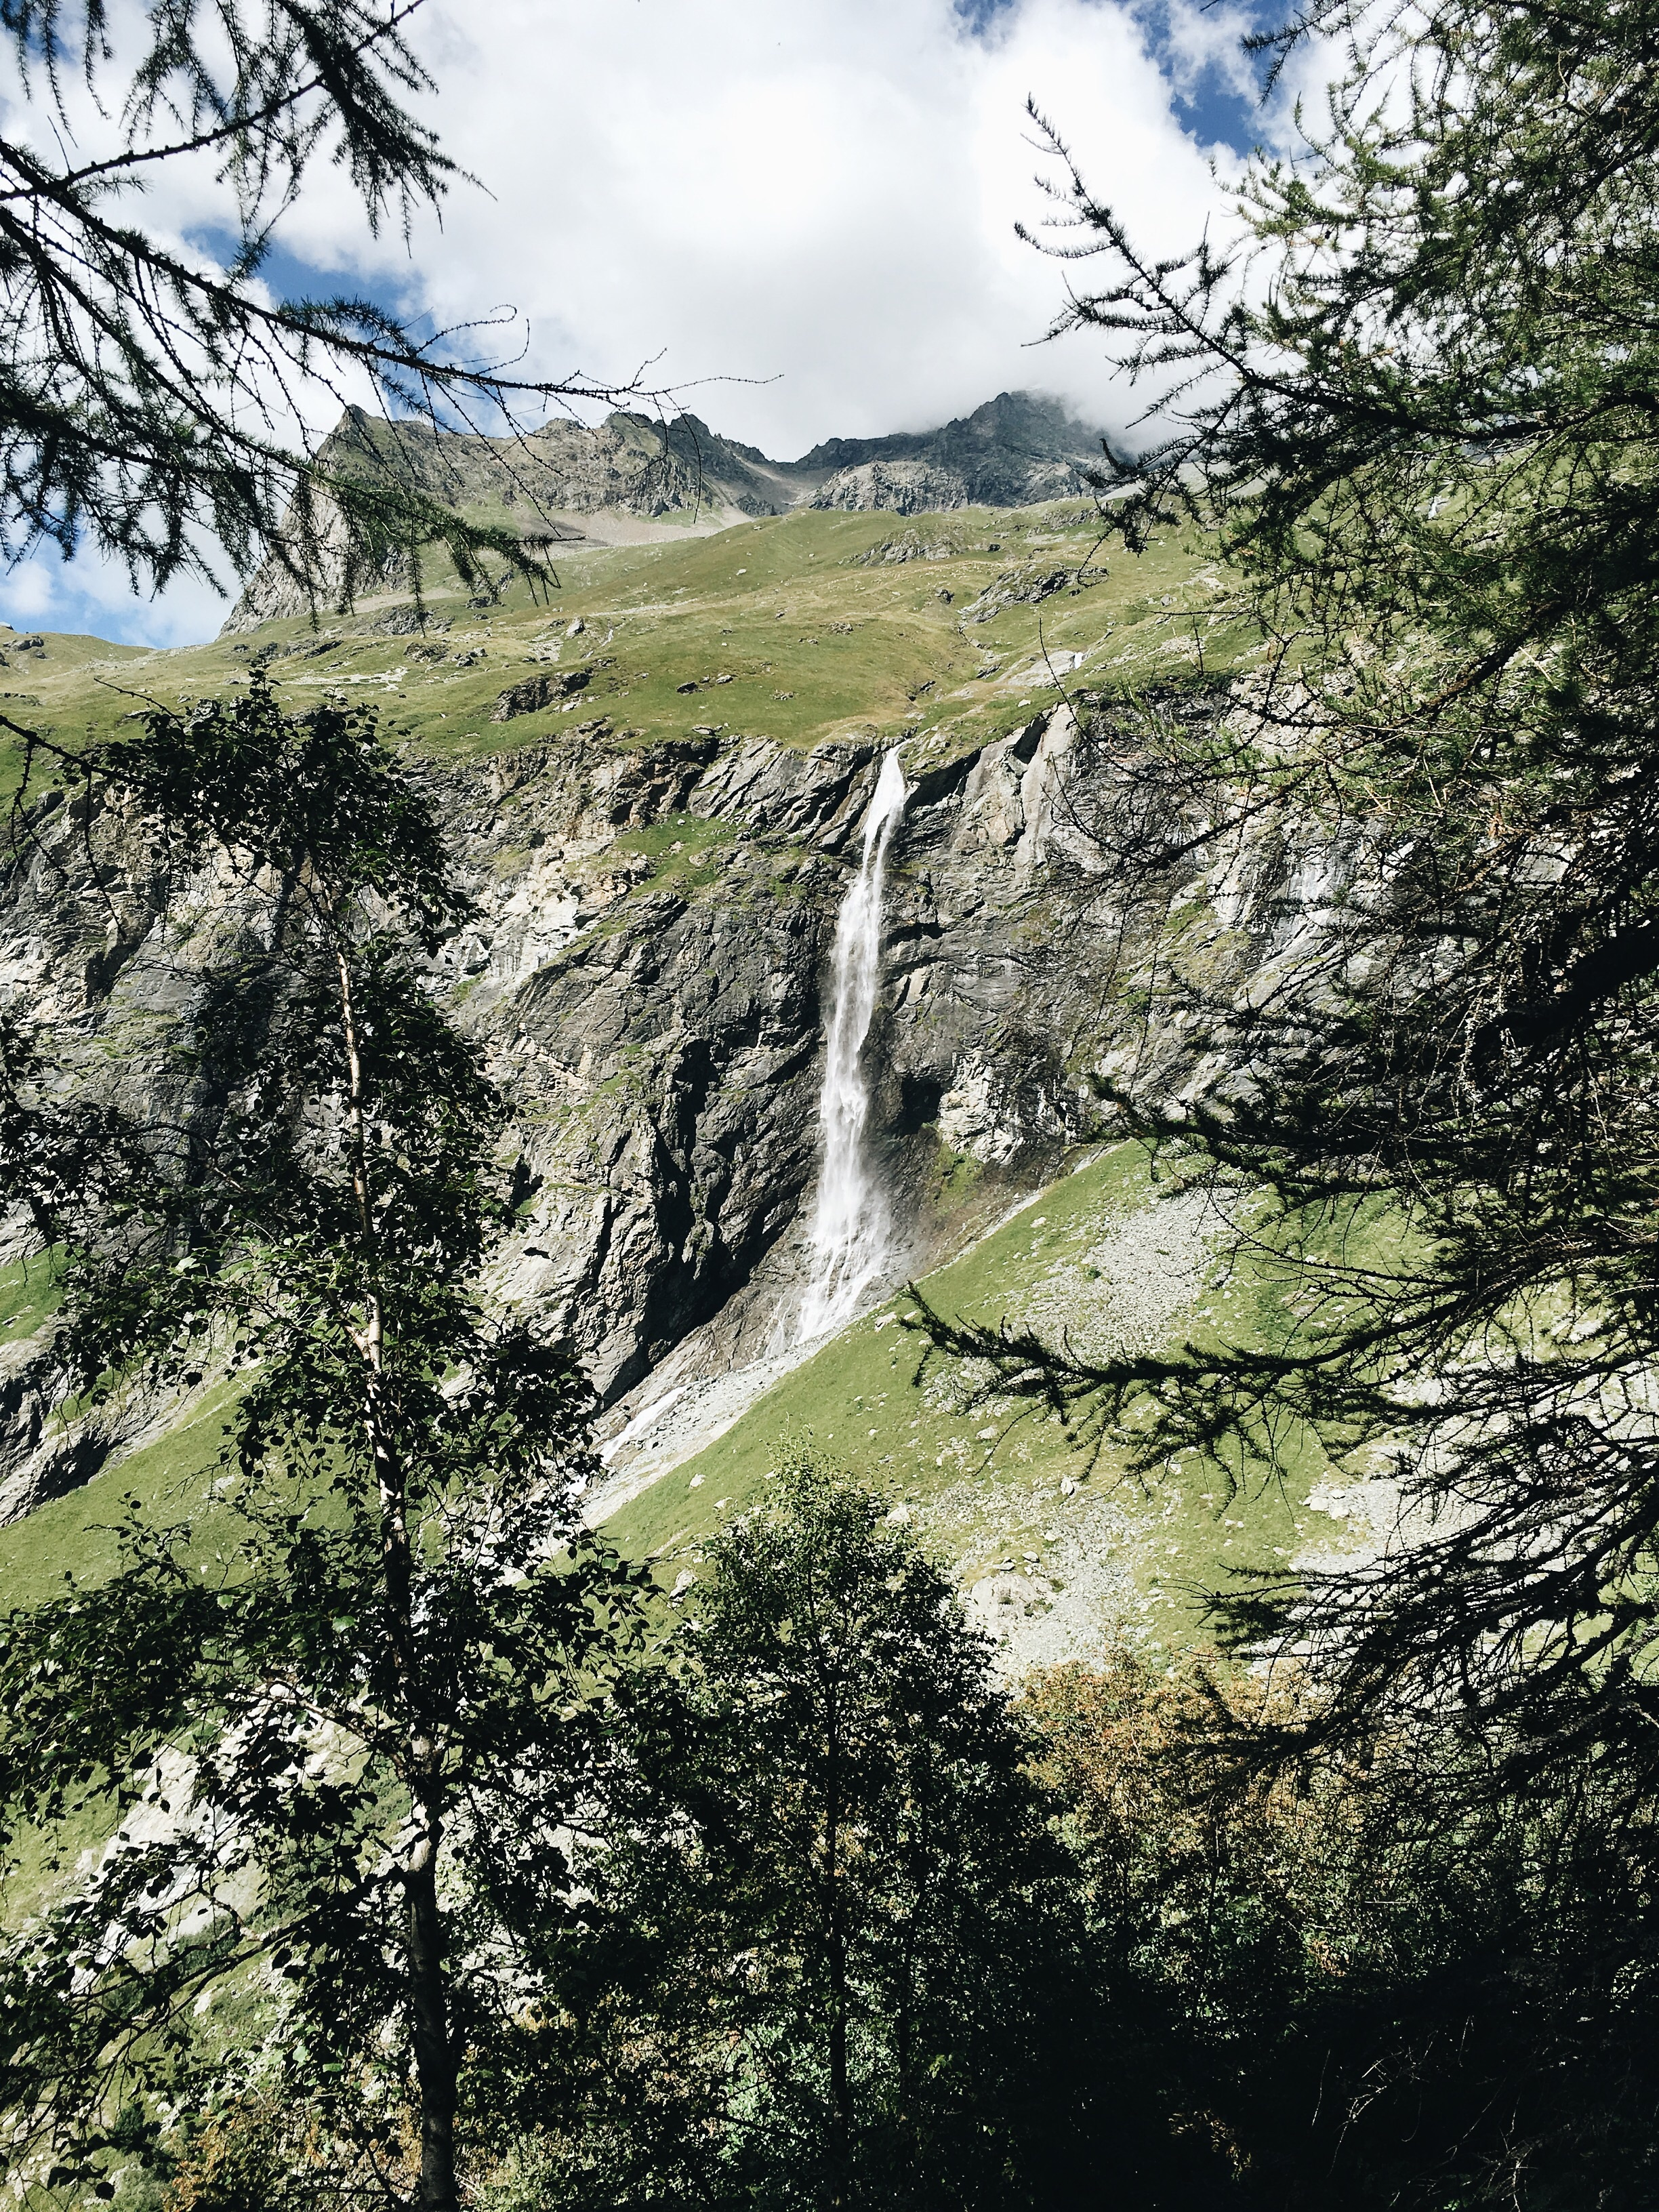 Entering the stunning Vanoise National Park